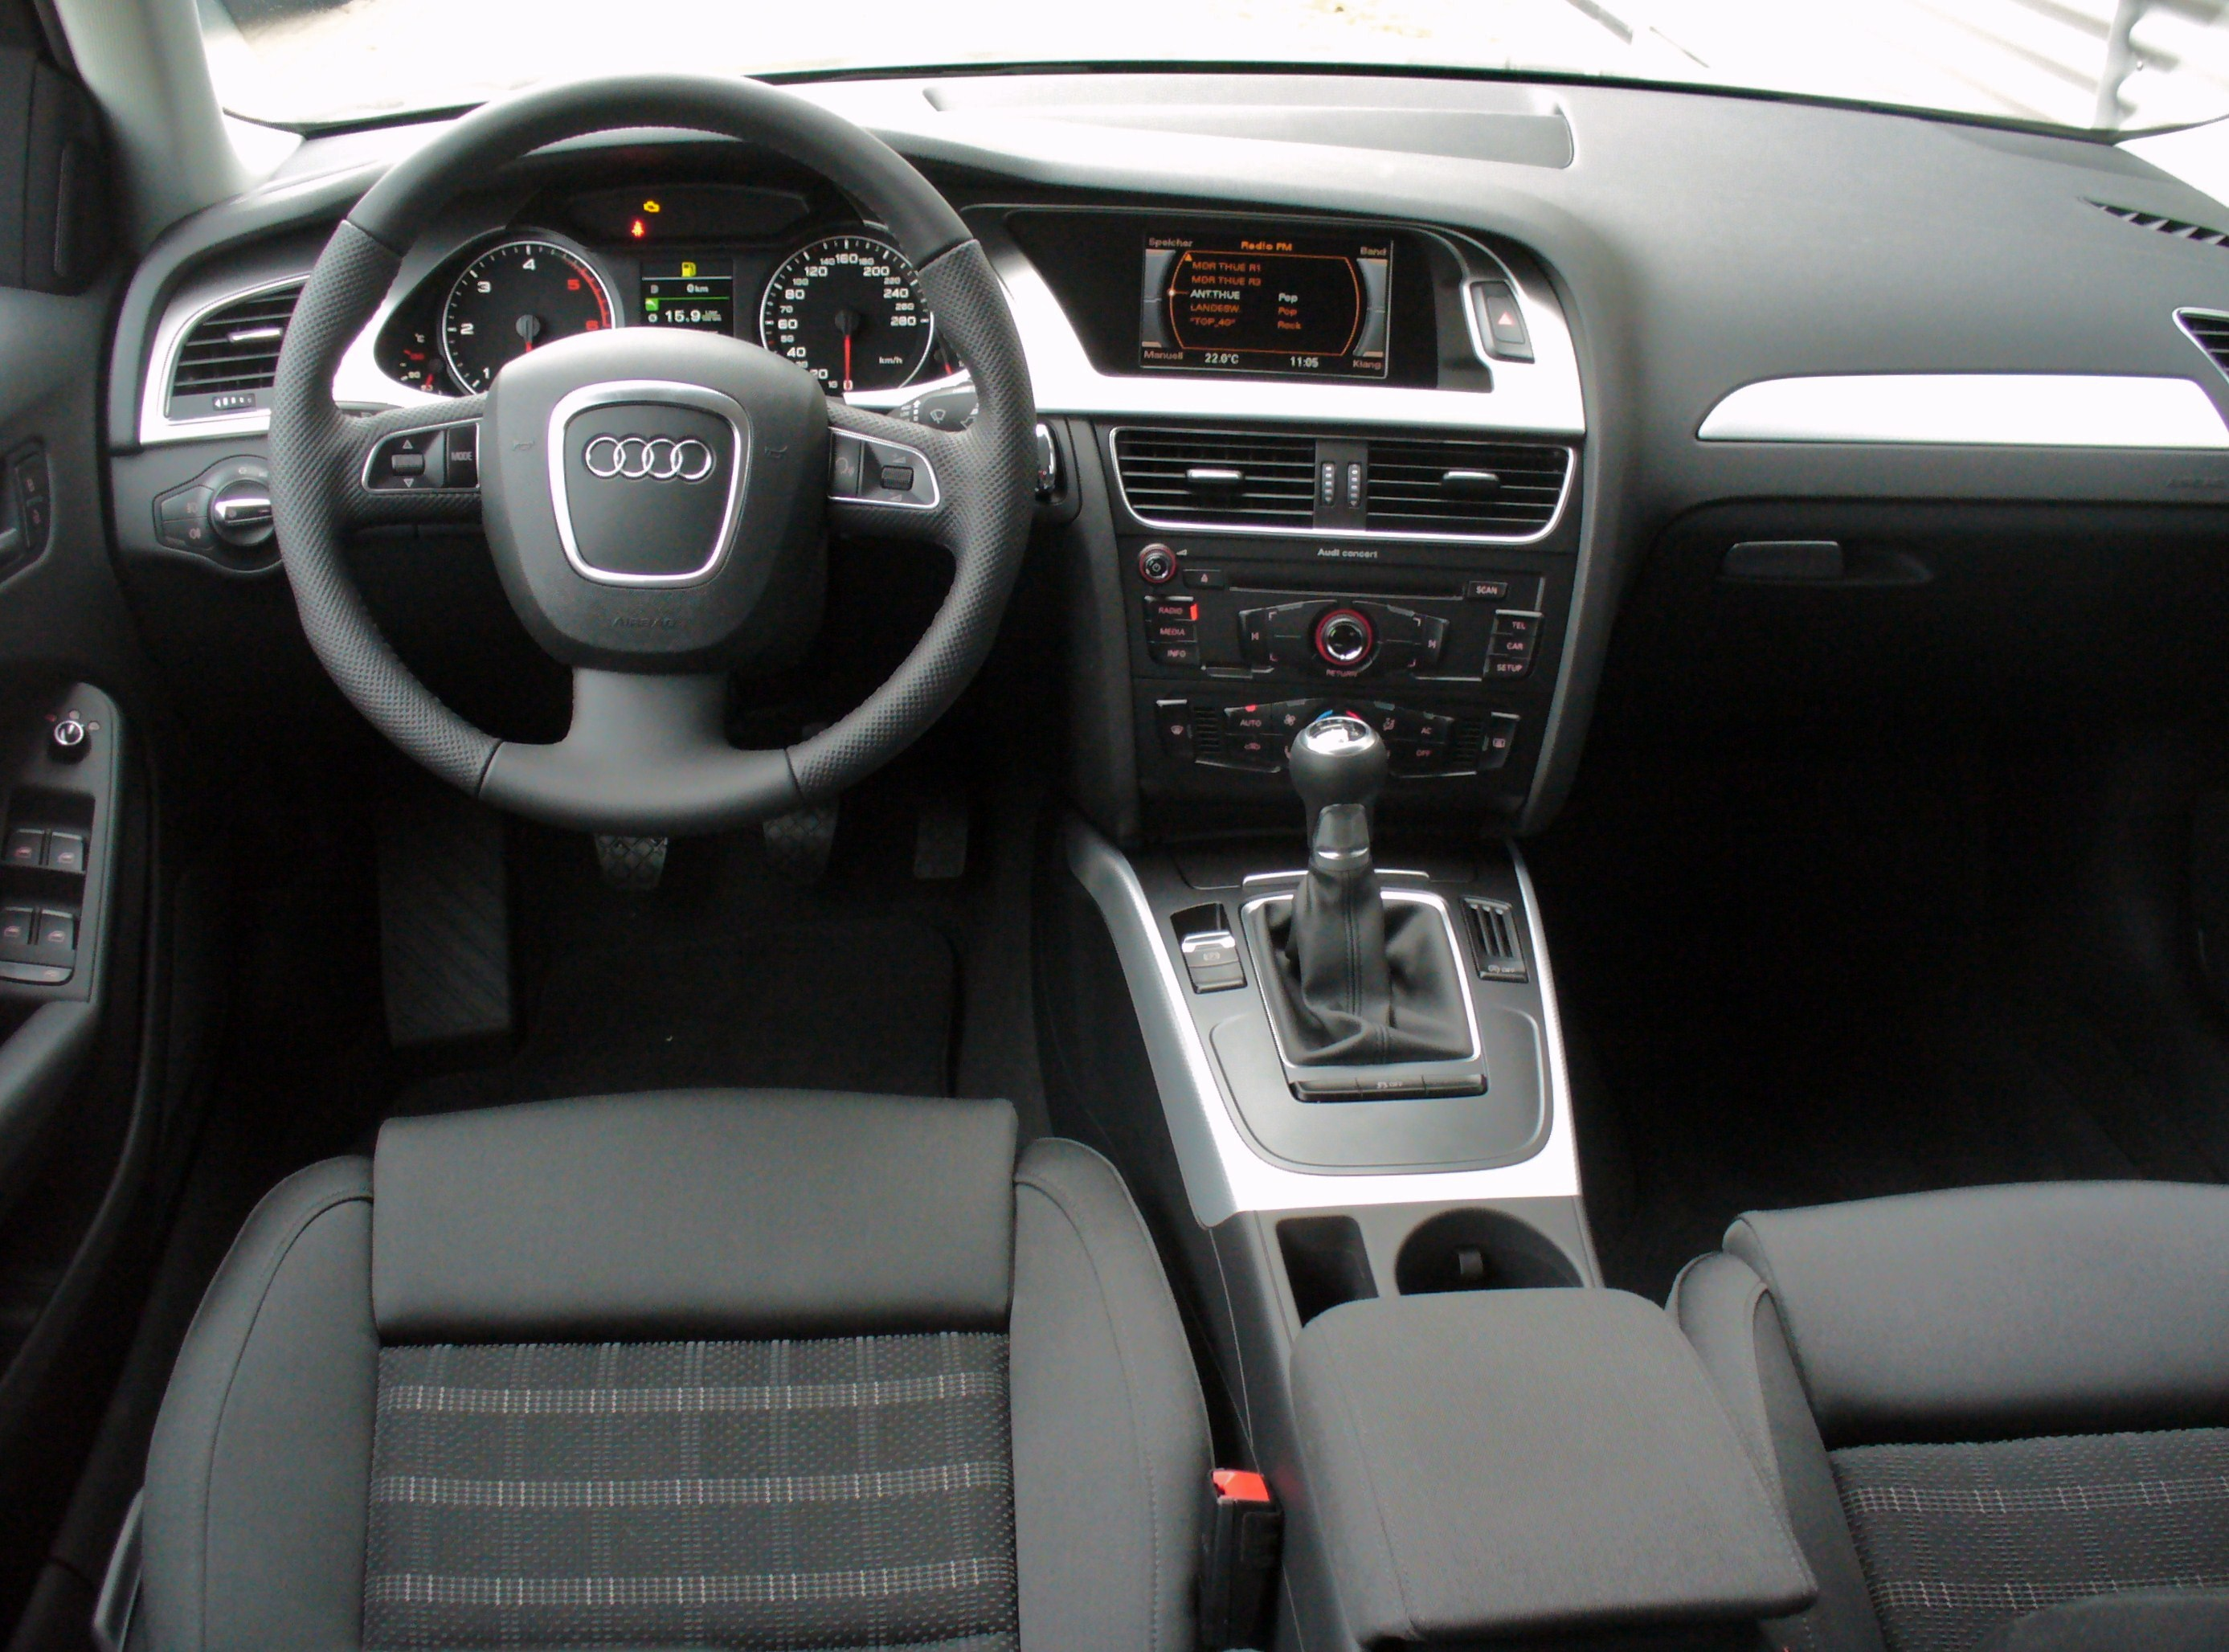 file audi a4 avant ambition 2 0 tdi tiefseeblau interieur jpg wikimedia commons. Black Bedroom Furniture Sets. Home Design Ideas